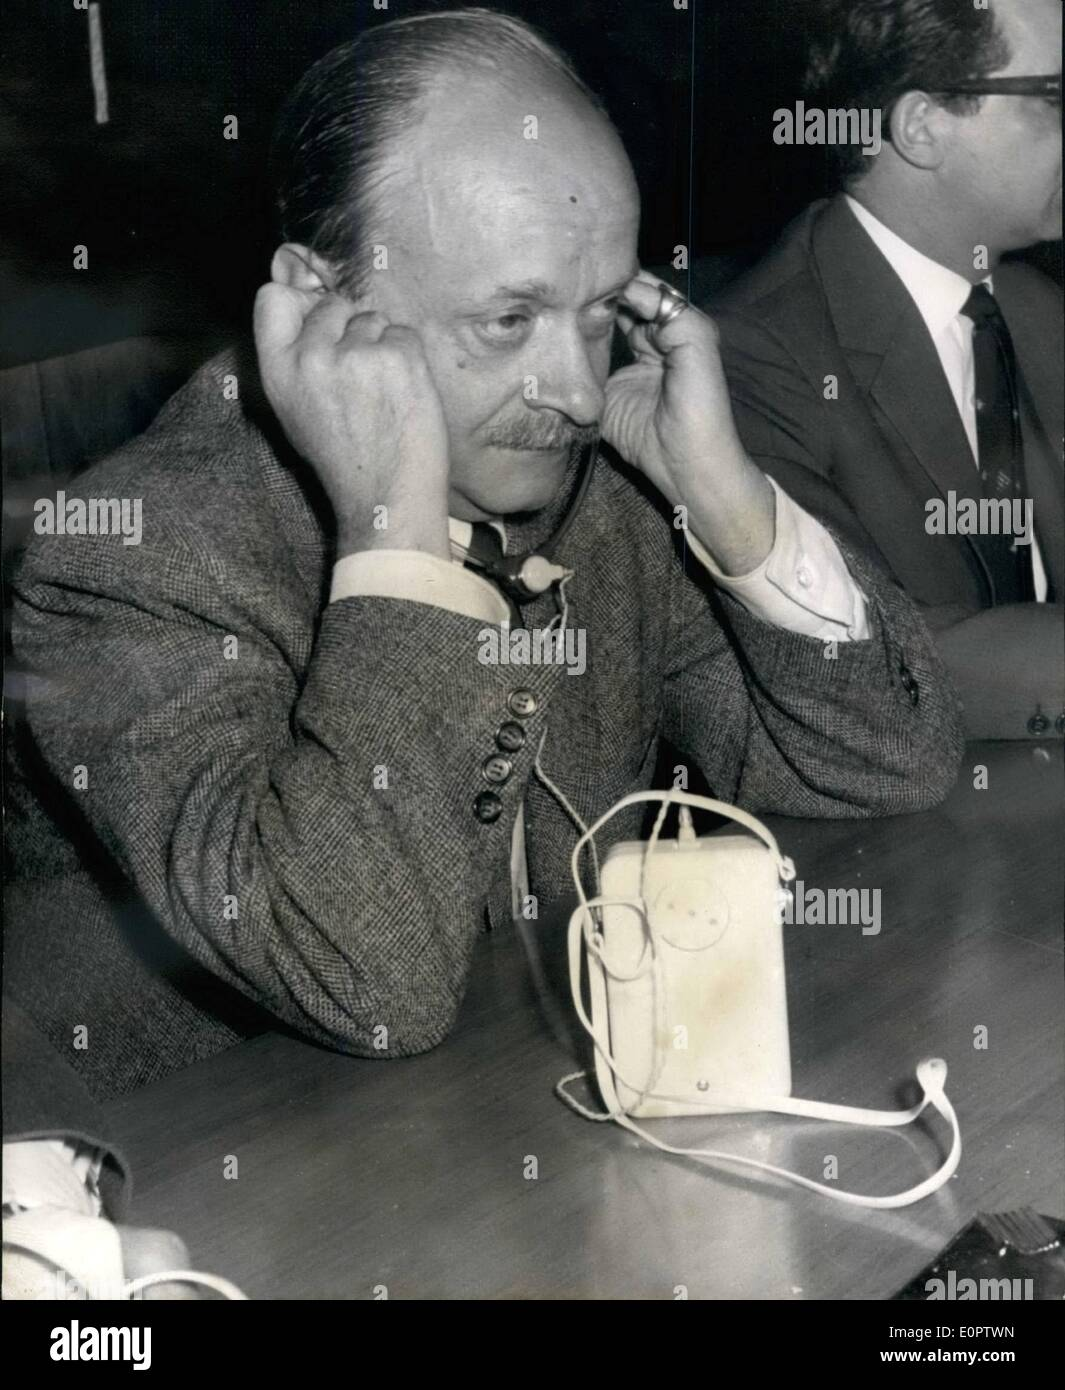 Jan. 01, 1957 - New gag of the NATO-Conference at Bonn. Bundes-pressechef FELIX von ECKHARDT are demonstrating the new equipement. - Stock Image